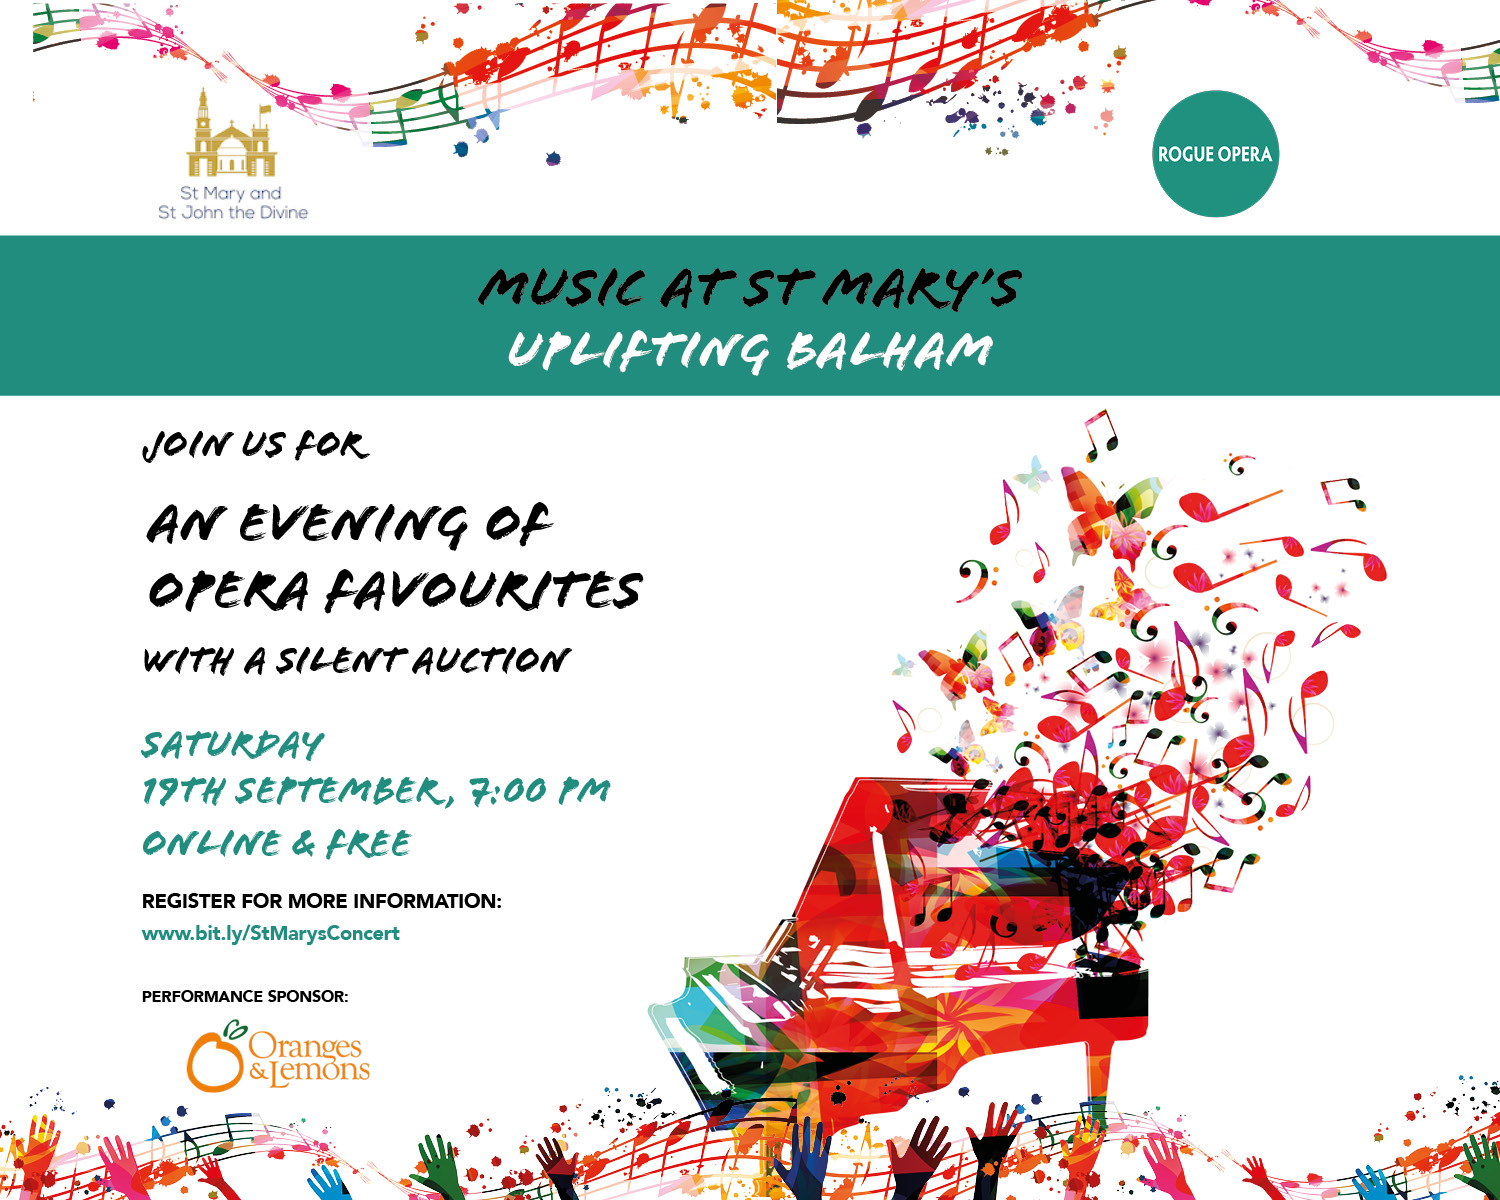 St Mary's Church Balham London online concert of opera favourites and silent auction with Rogue Opera